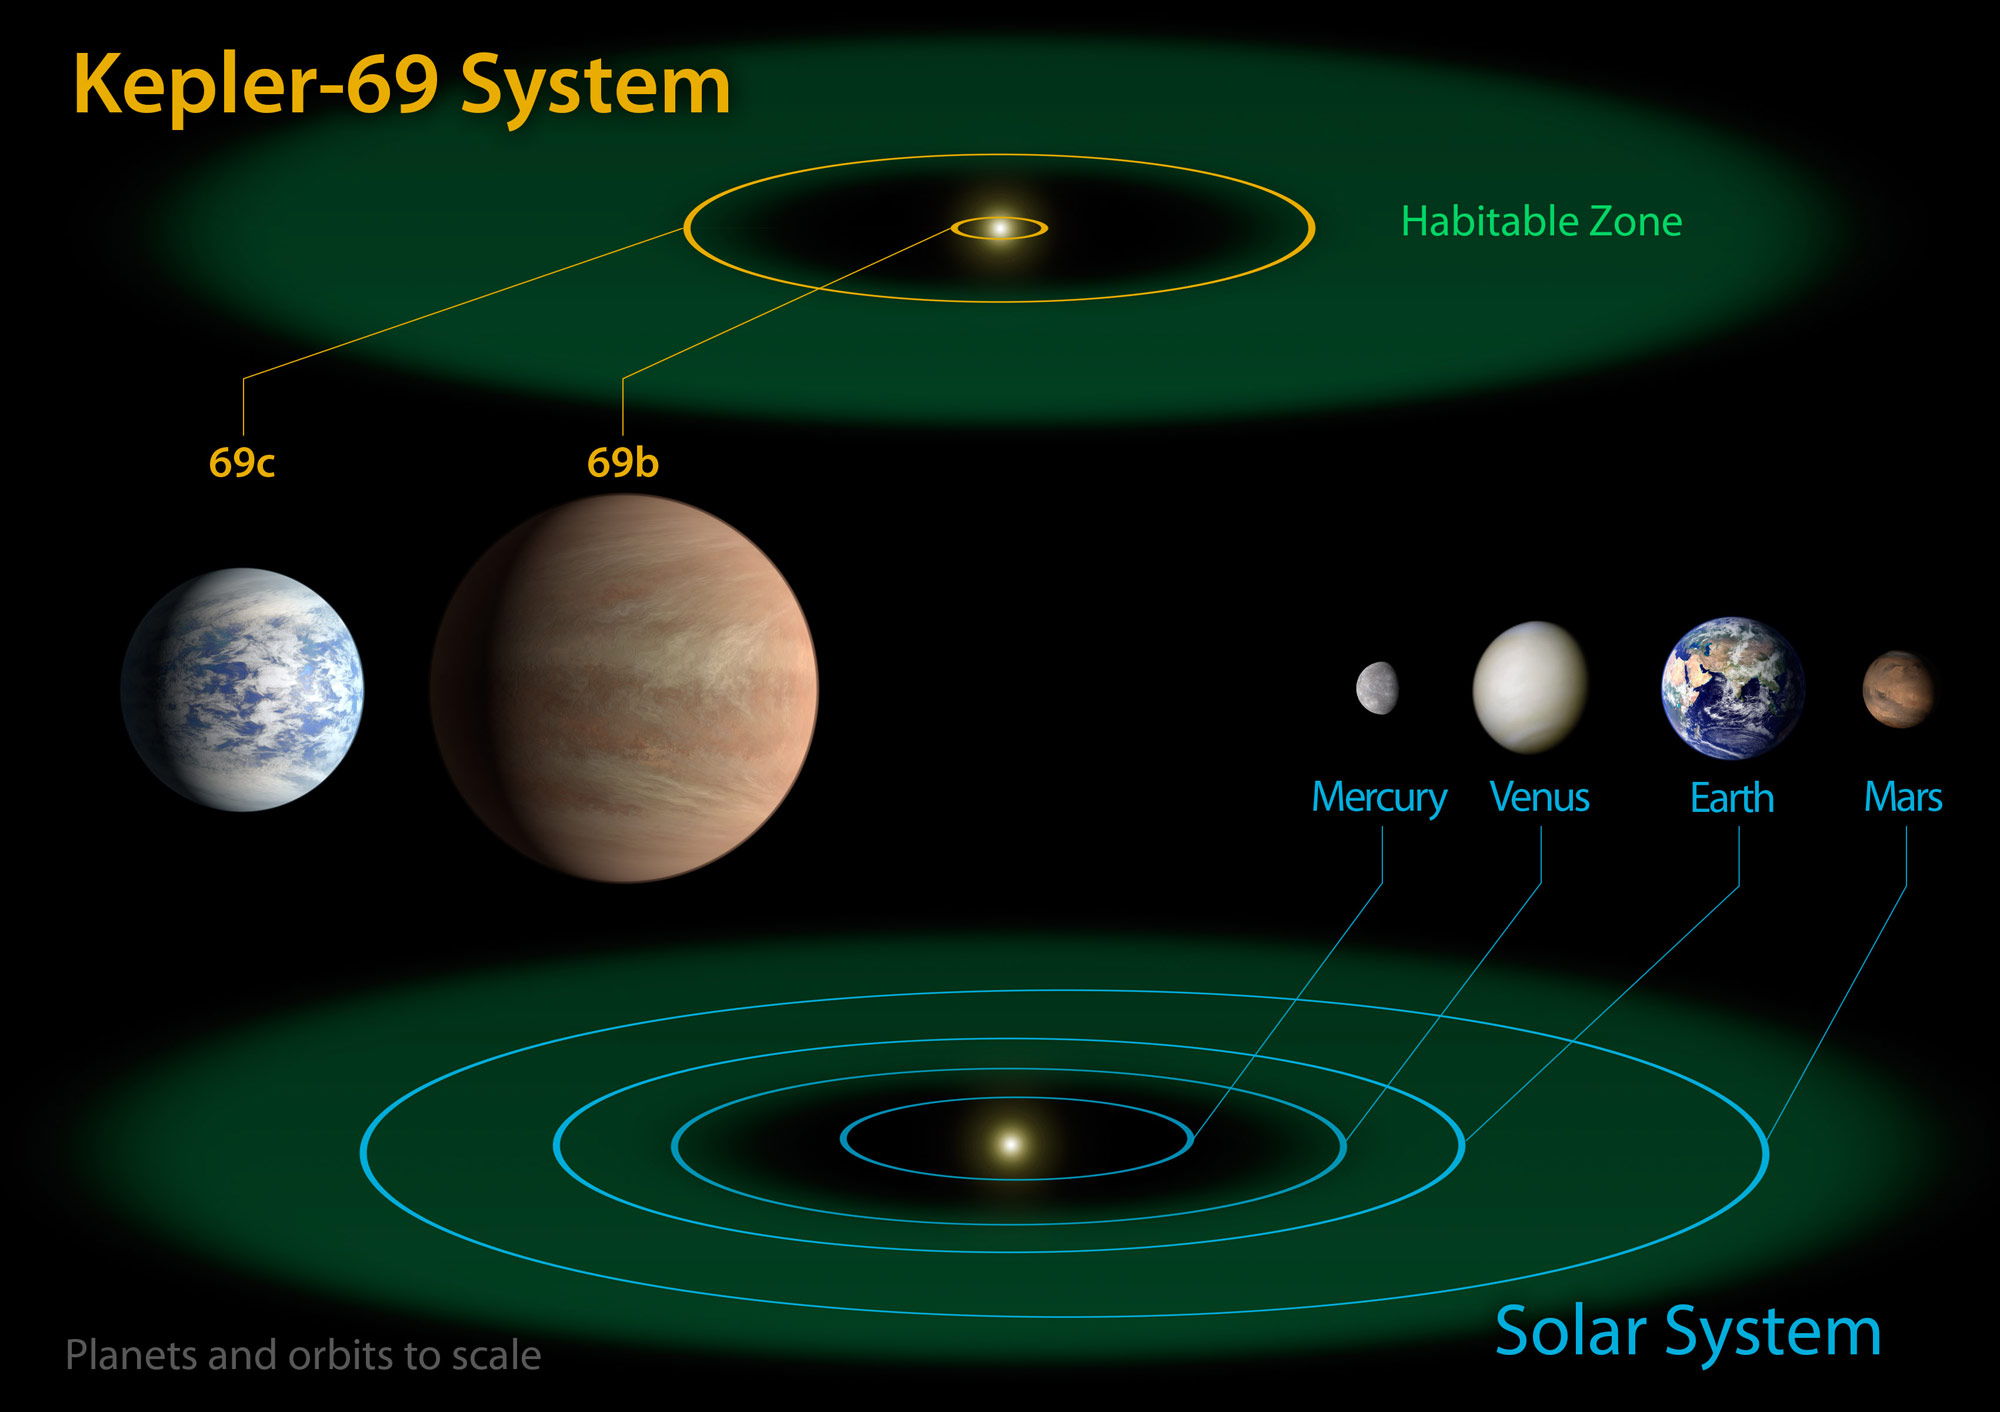 an examination of the number and discovery of habitable earth sized planets in 22 of sun like stars  Those yawning over yet another discovery of habitable-zone planets may not fully appreciate that priorities are there are probably a lot of other small stars with a similar number of planets but finding seven transiting earth-sized planets in such a small sample suggests.